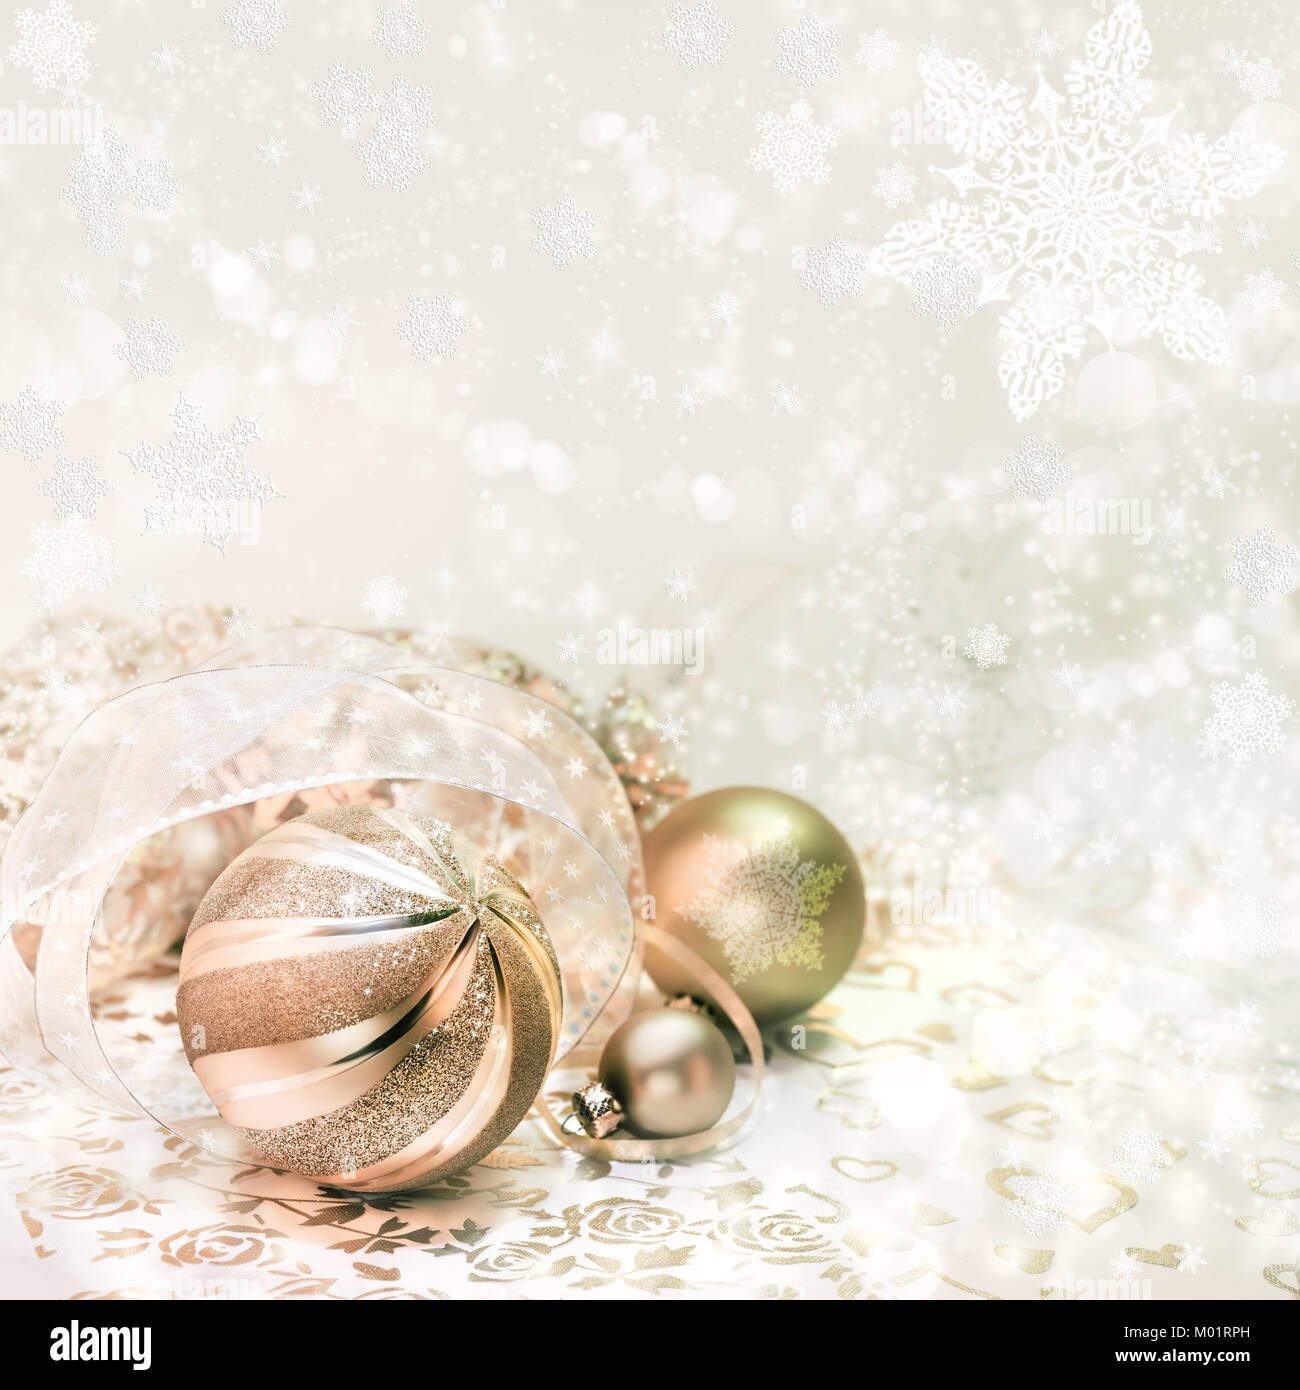 Golden Christmas decorations on abstract winter background, text space - Stock Image